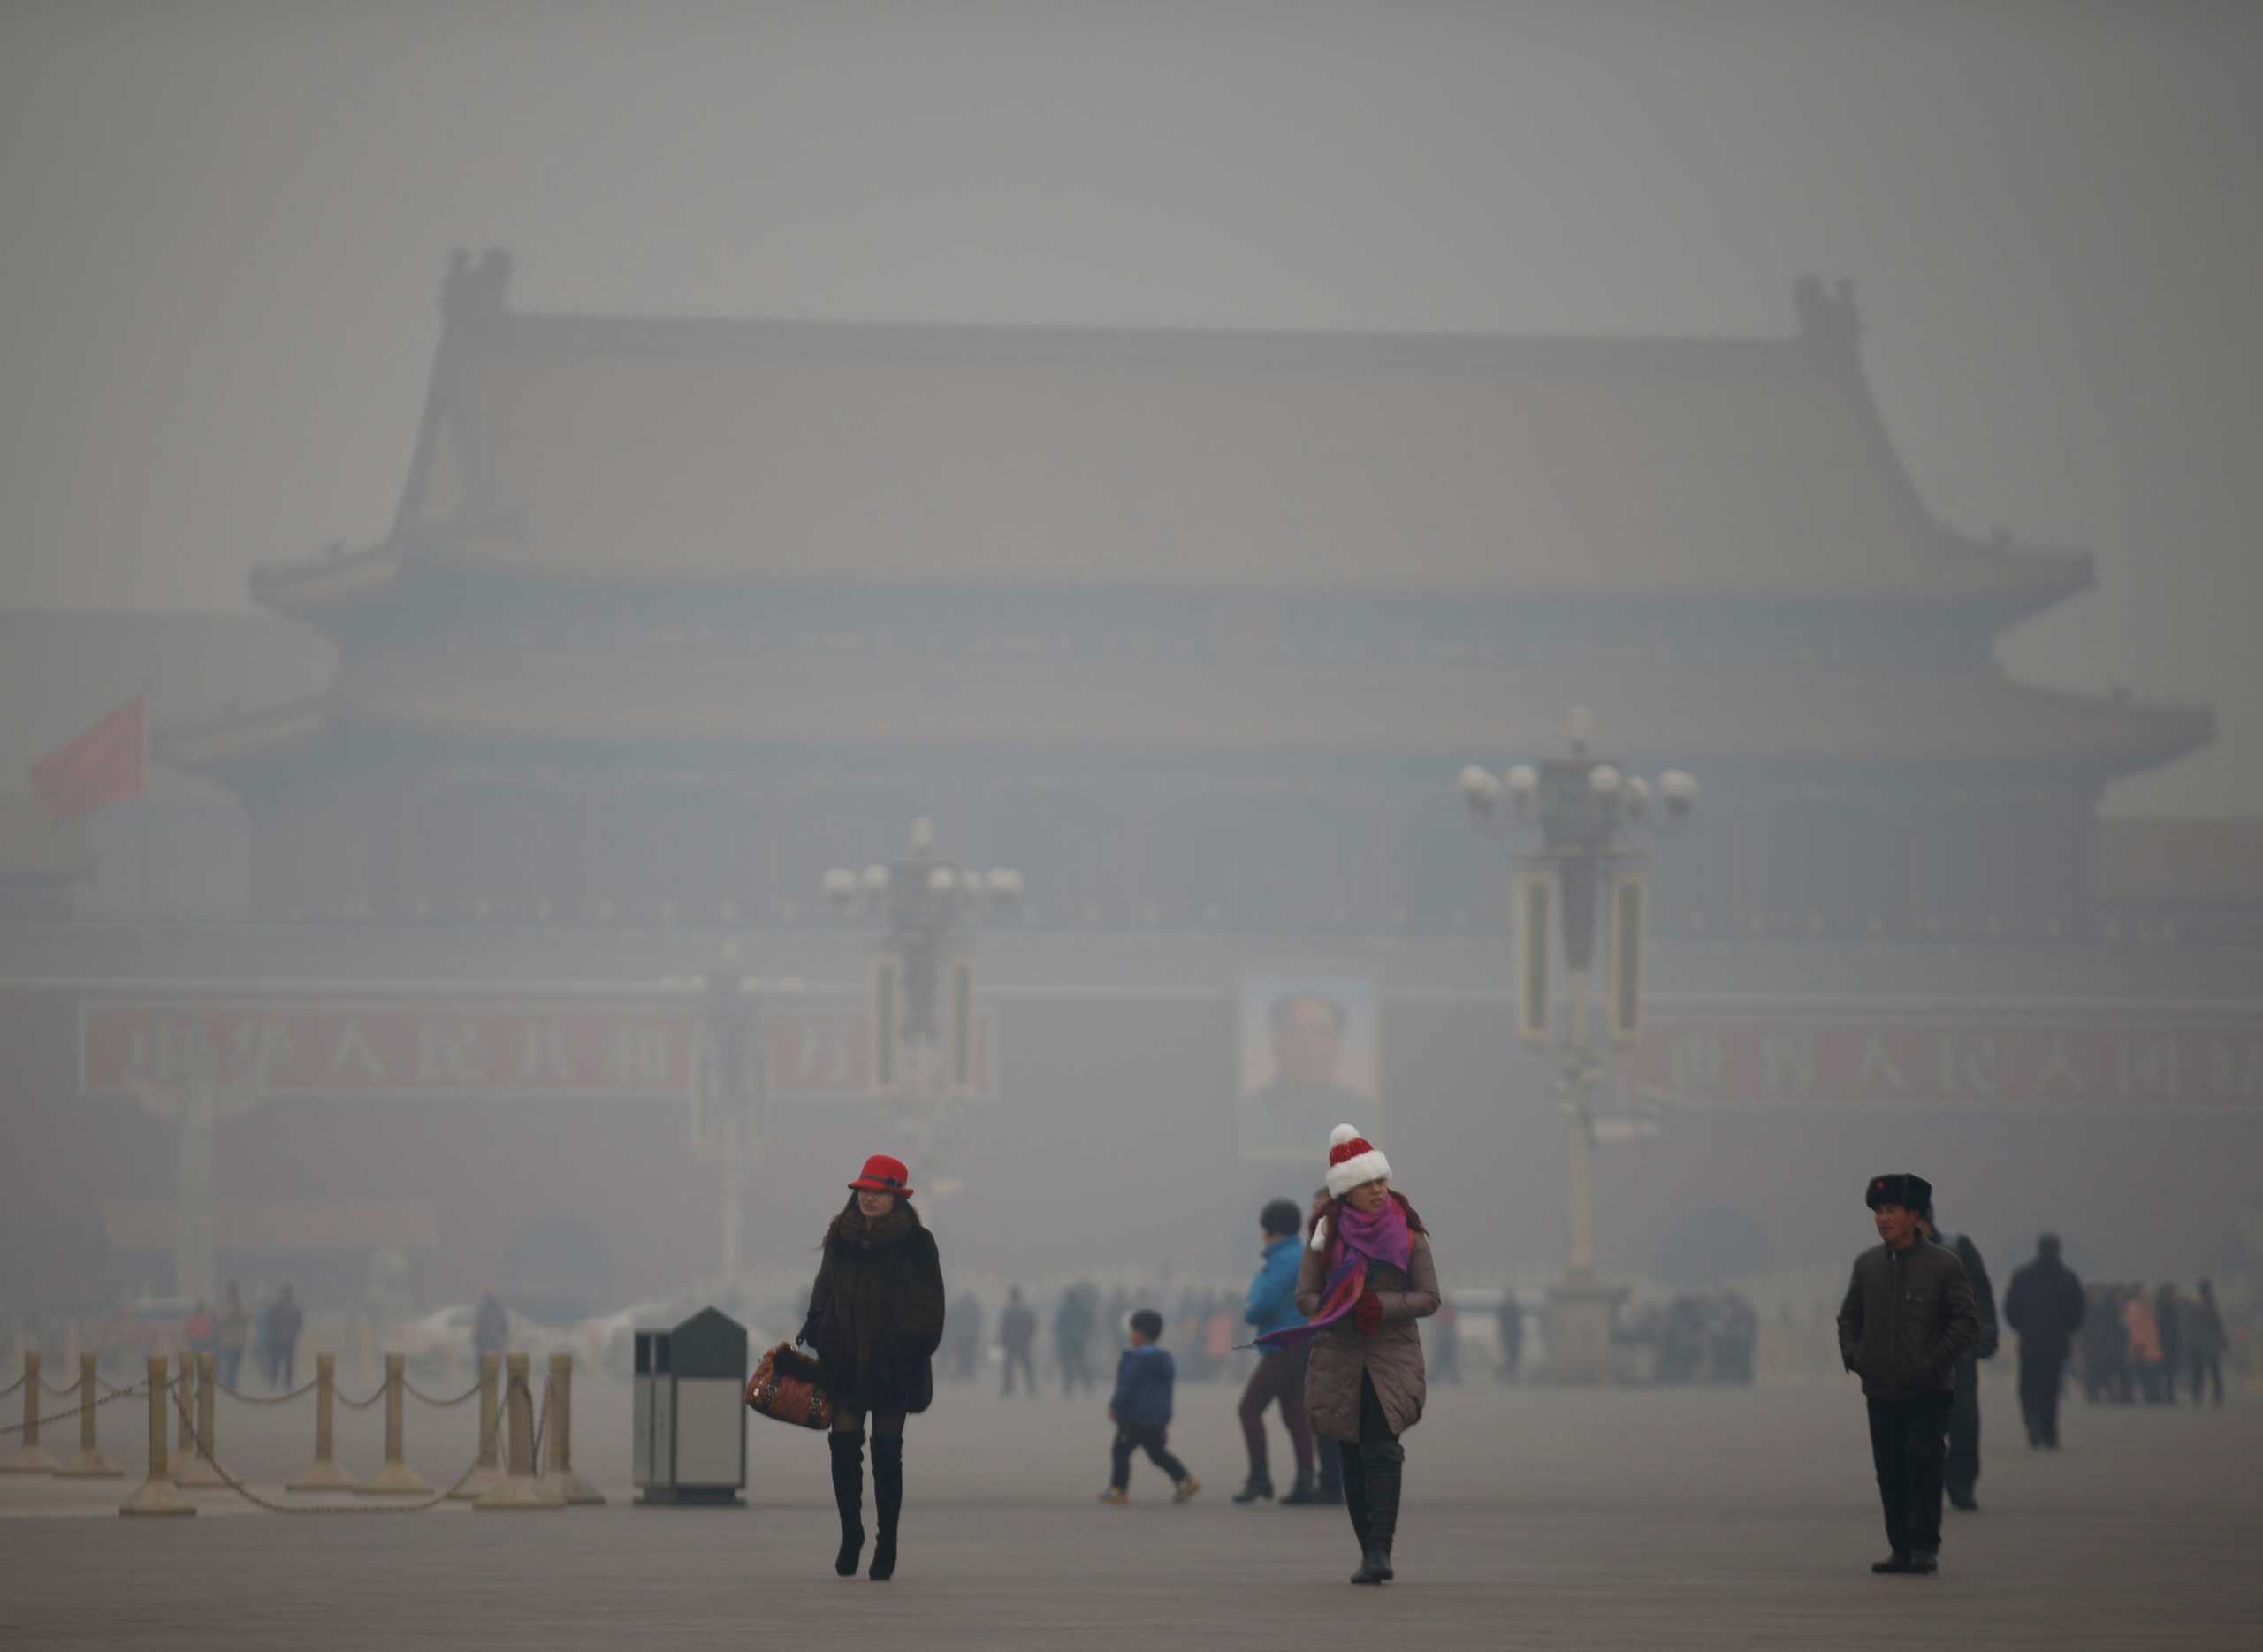 Visitors take a walk during a polluted day at Tiananmen Square in Beijing on Jan. 15, 2015.